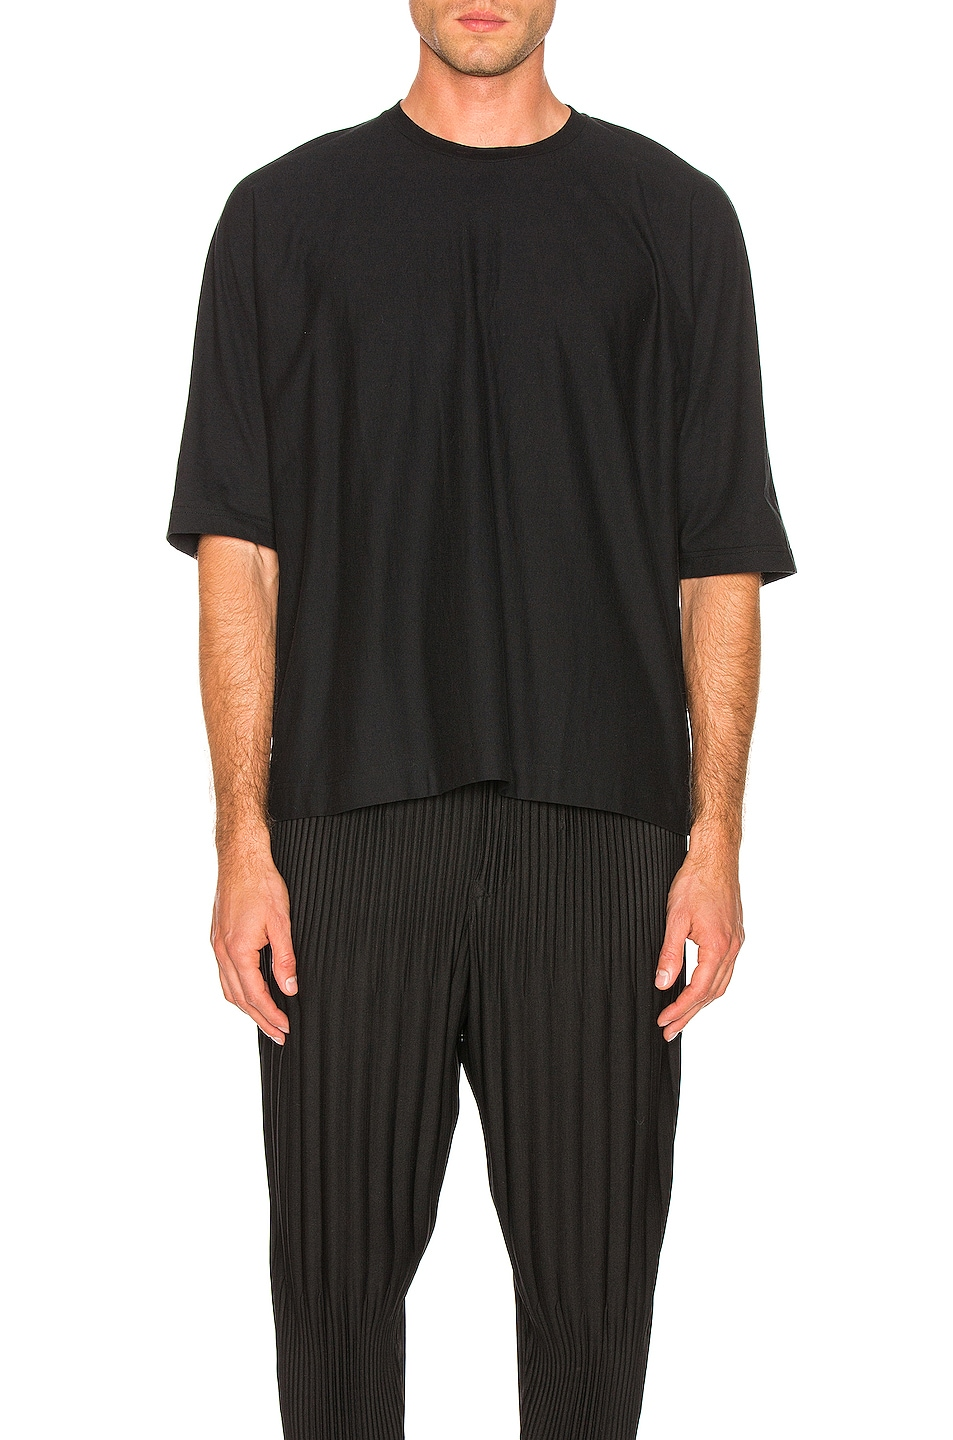 Image 1 of Issey Miyake Homme Plisse Release T in Black